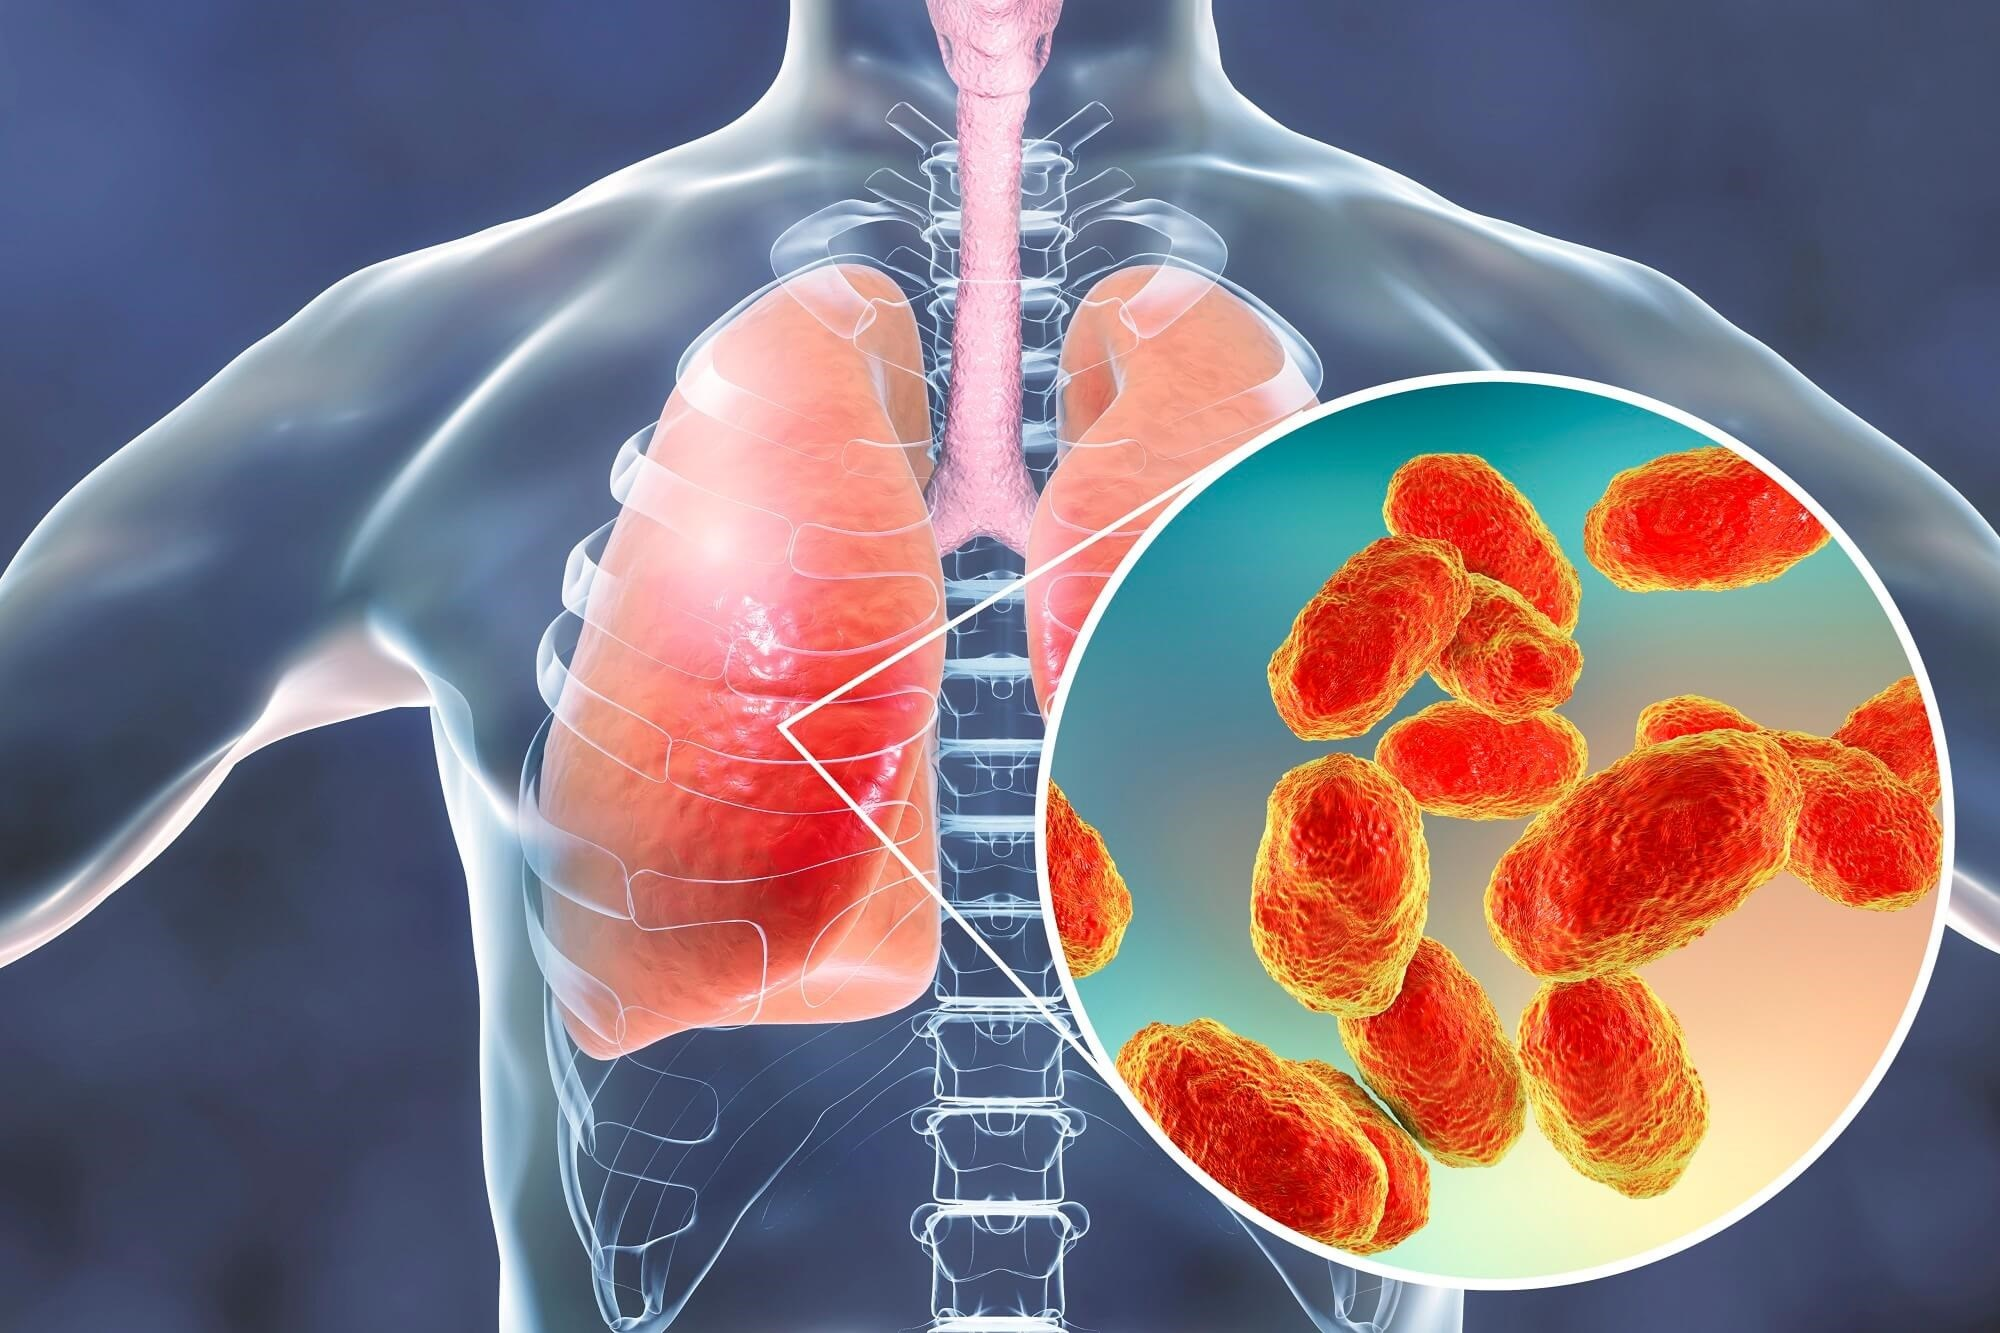 82% of 1531 patients in whom a major cardiovascular event developed had a diagnosis of bacterial pneumonia.